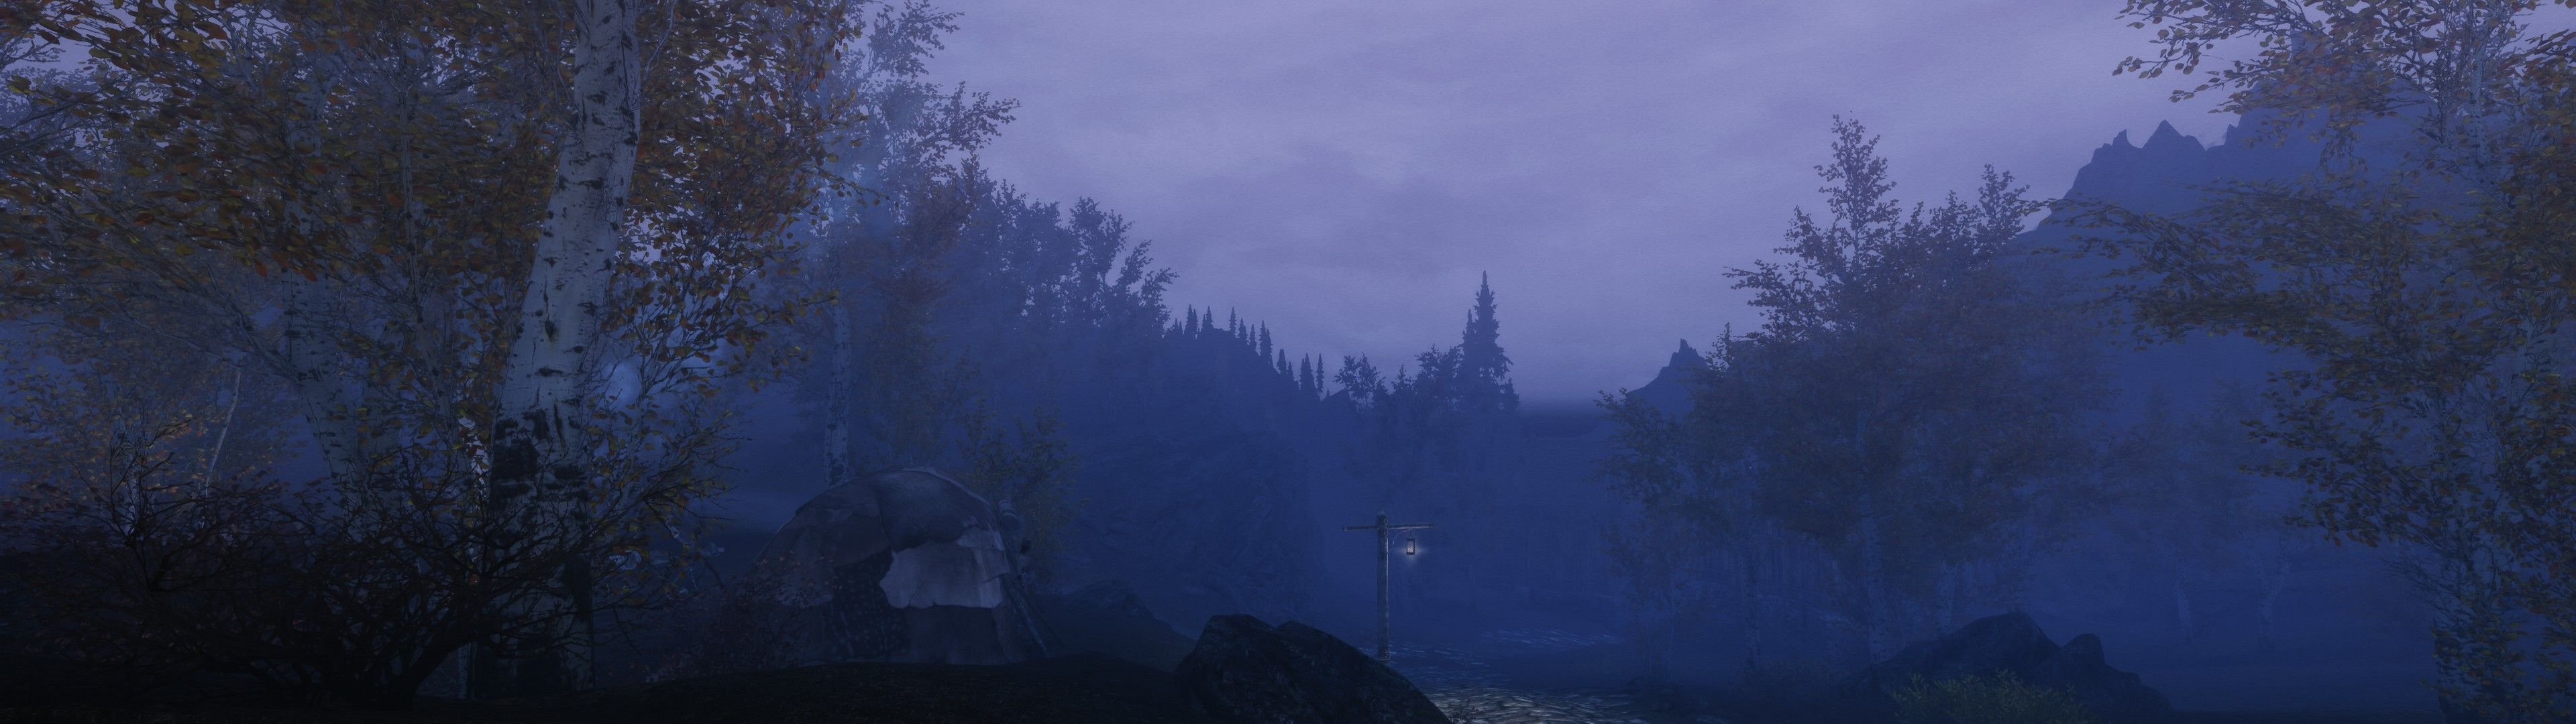 Here Are Some Dual Monitor Screens S I Took In Skyrim This Morning 3840x1080 Hd Wallpaper From Gallsource Com